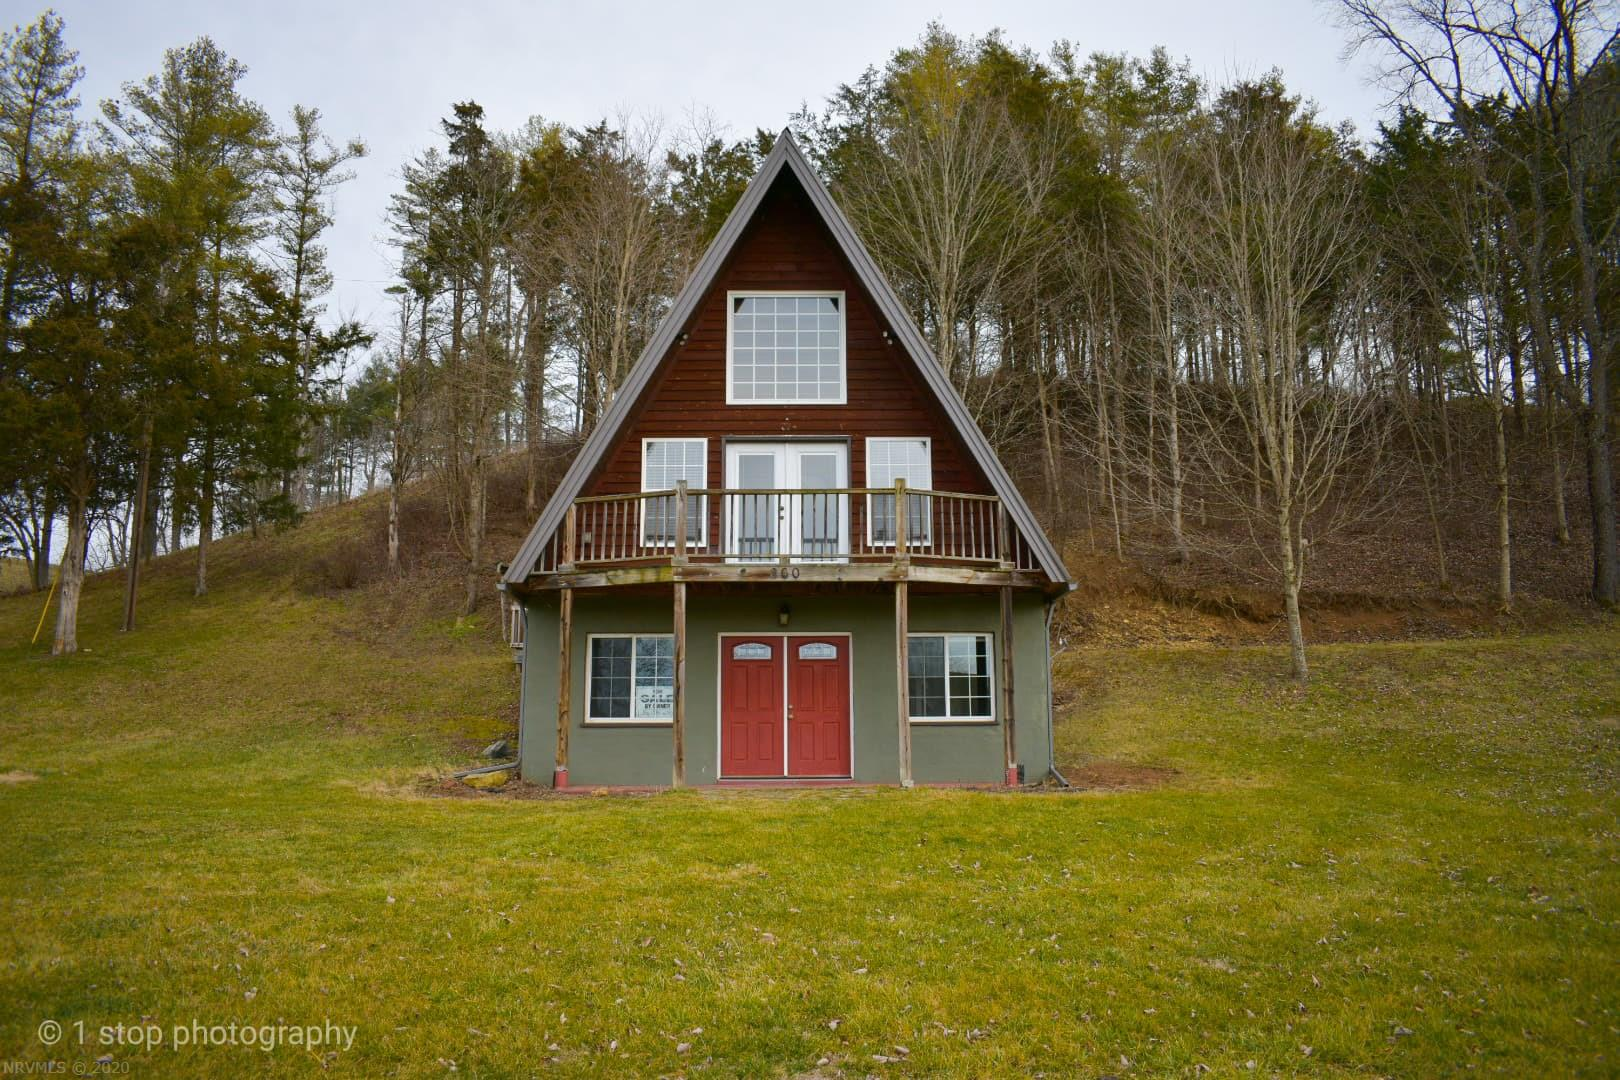 300  Cobb,  Rural Retreat, VA